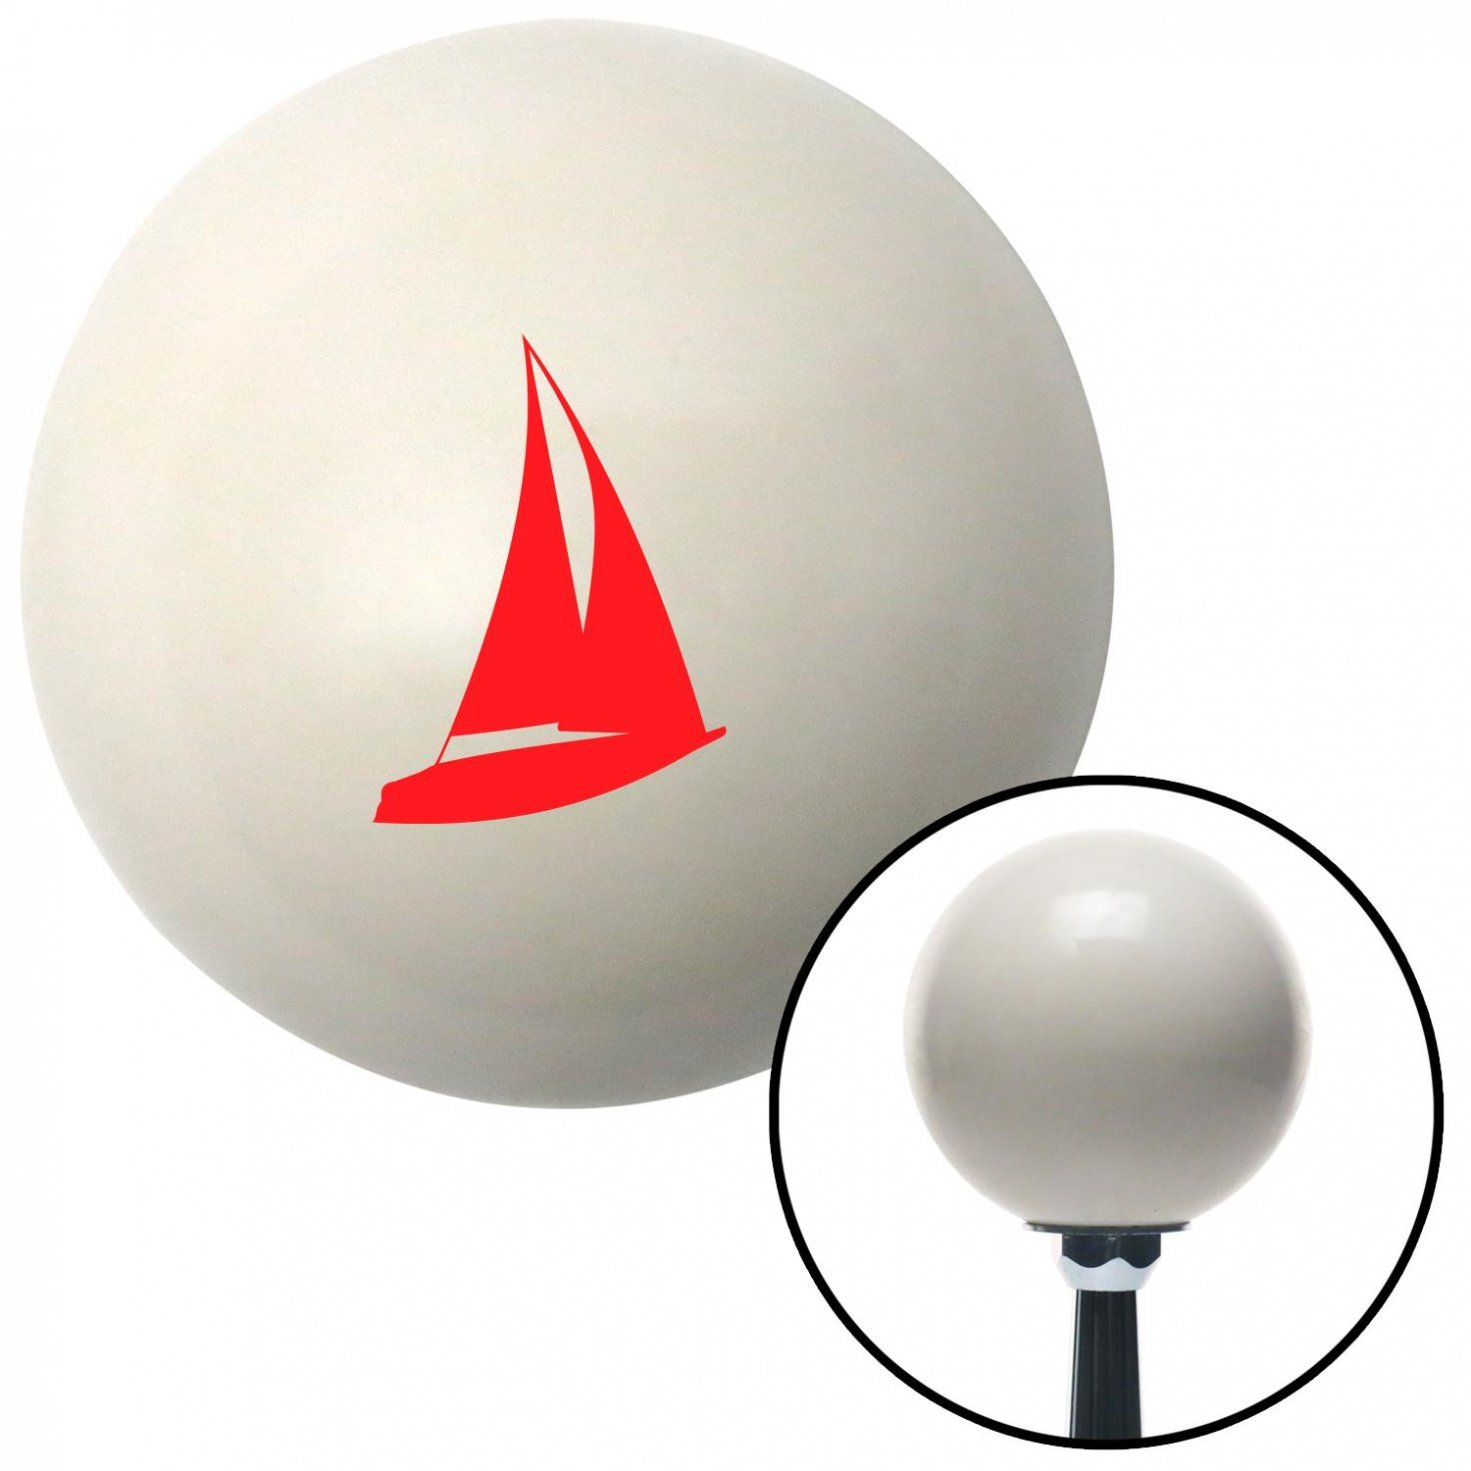 Red Sail Boat American Shifter 35104 Ivory Shift Knob with 16mm x 1.5 Insert